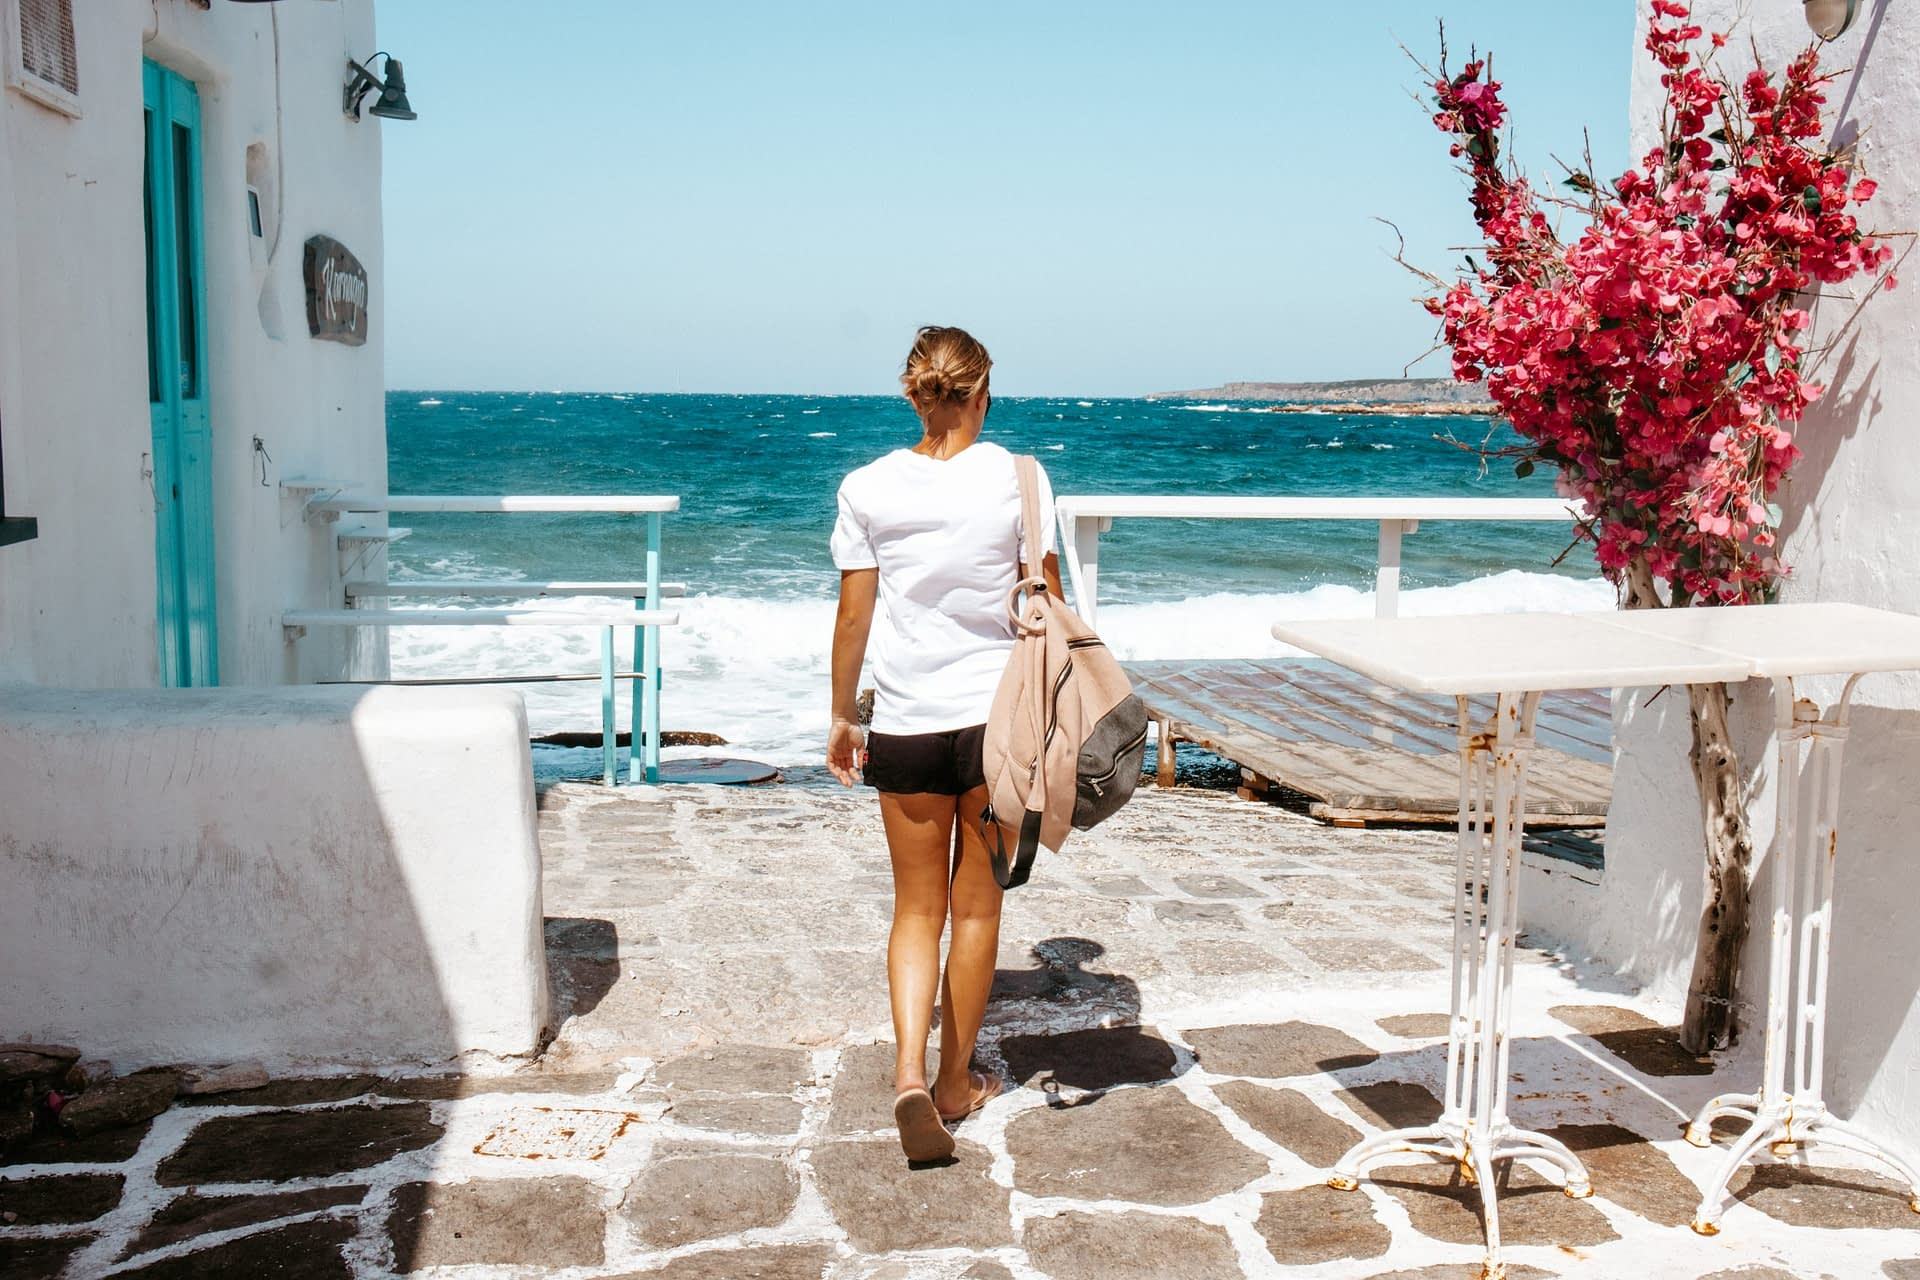 A woman walking to the sea in Naoussa. Things to do in Paros